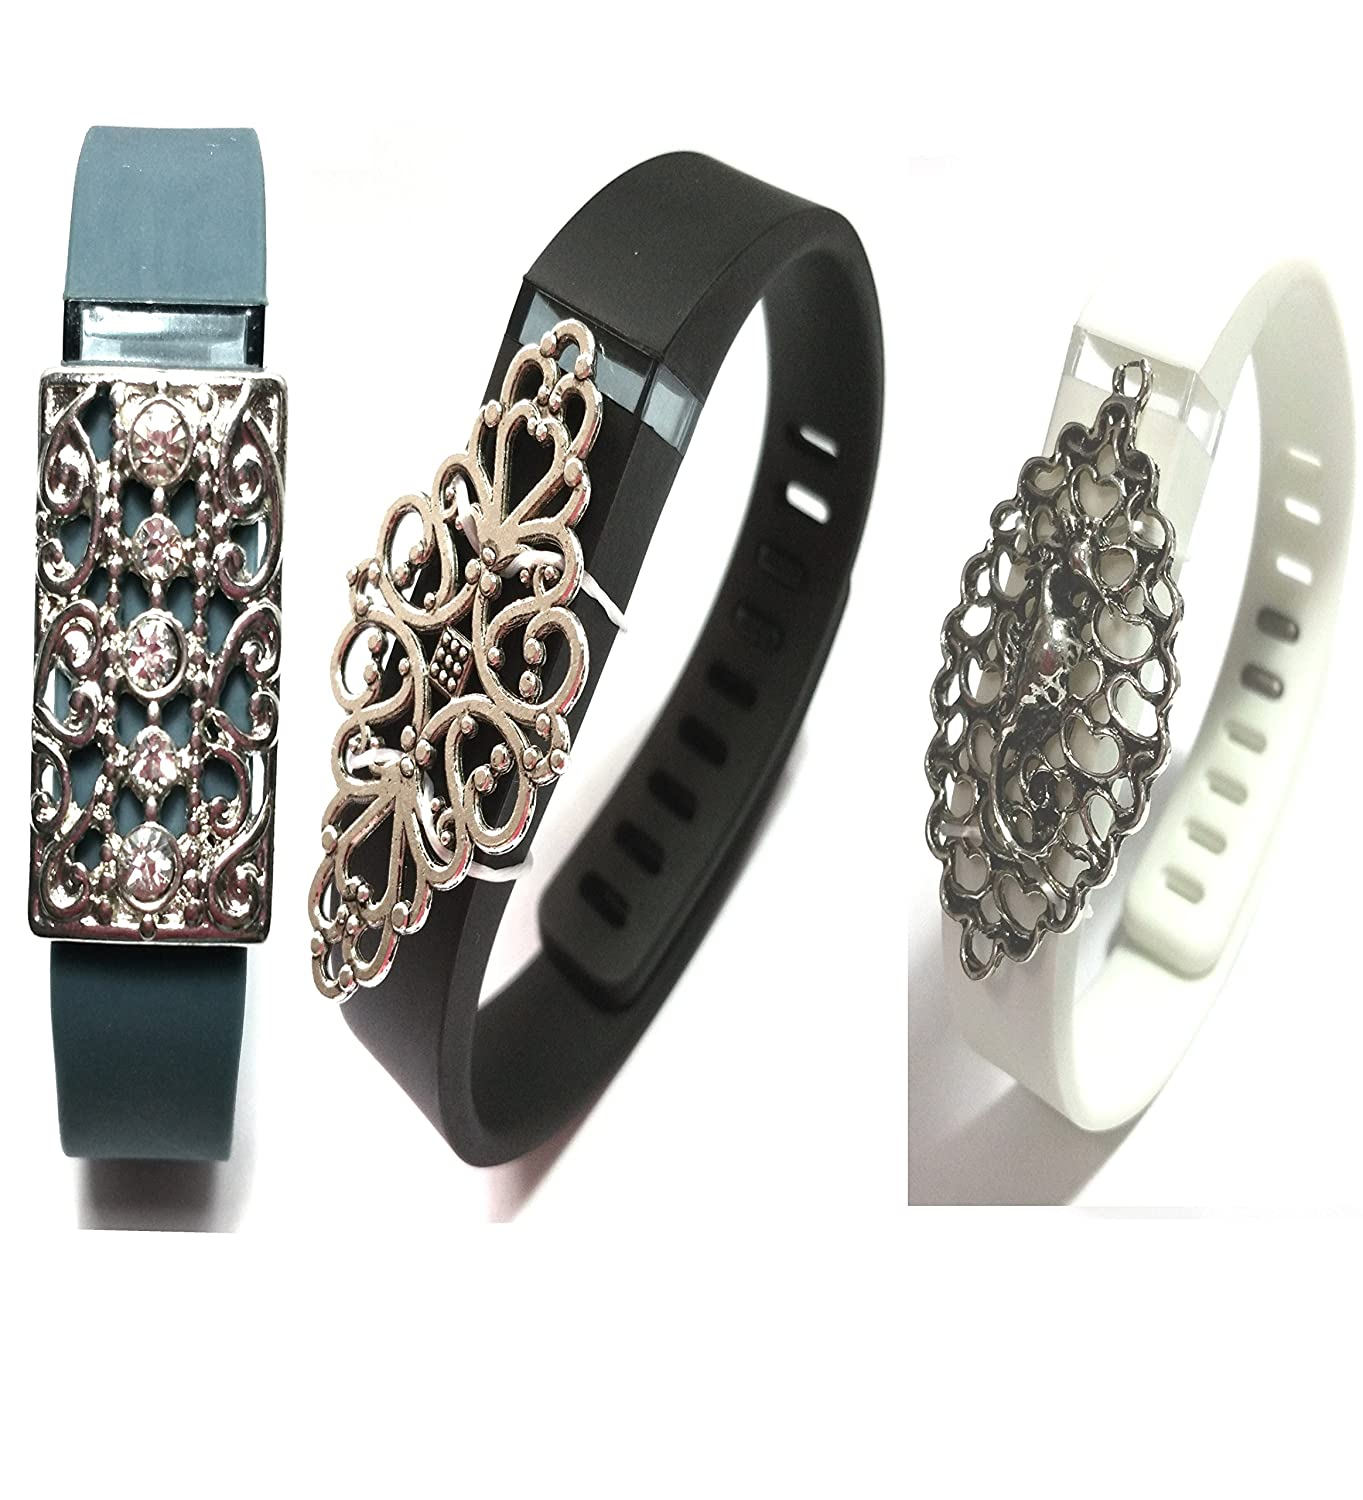 2pcs Fashion Wristband for Fitbit Flex with Clasp Wireless Activity-fitness Band Bling Accessory- Dress Outfit. Relho